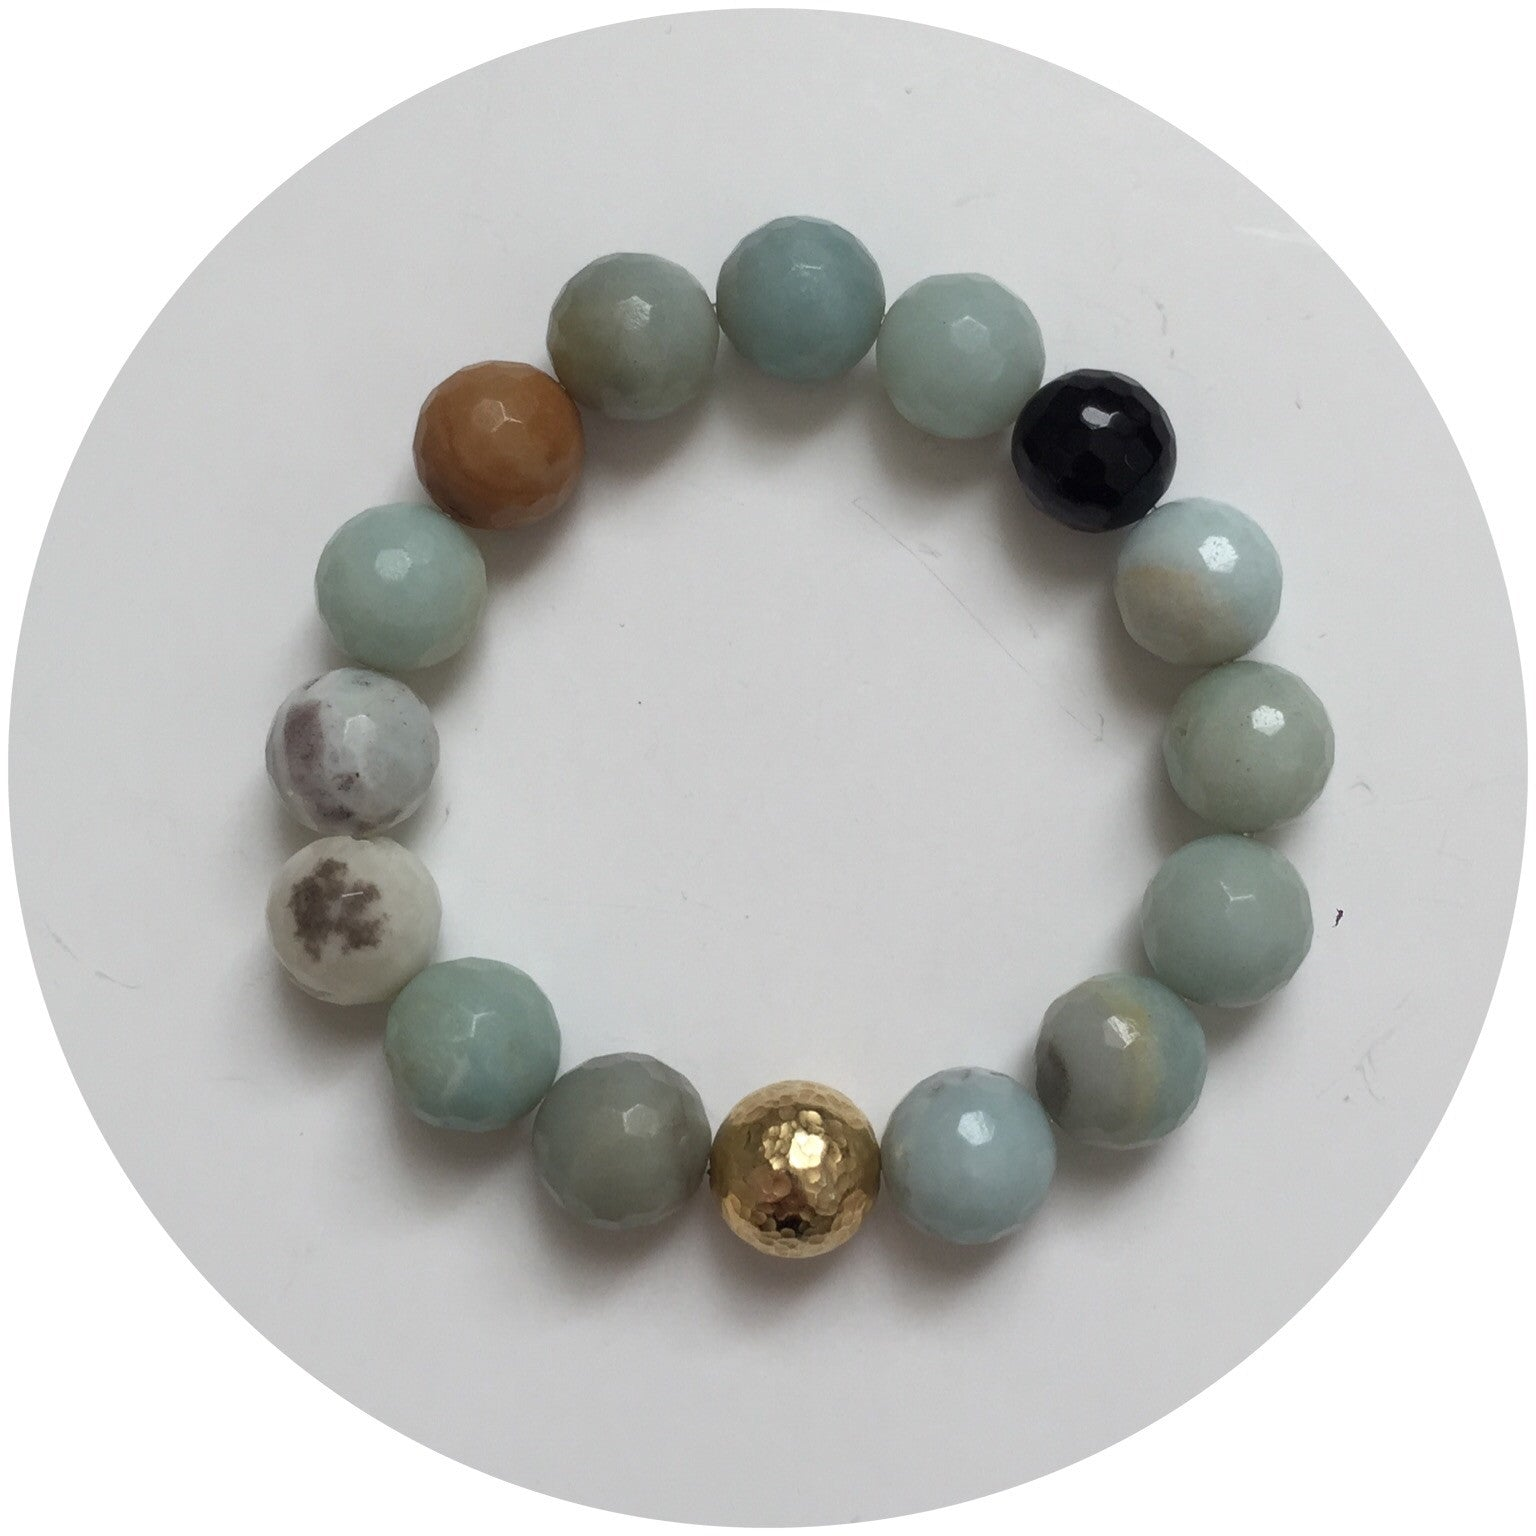 Amazonite with Hammered Gold Accent - Oriana Lamarca LLC